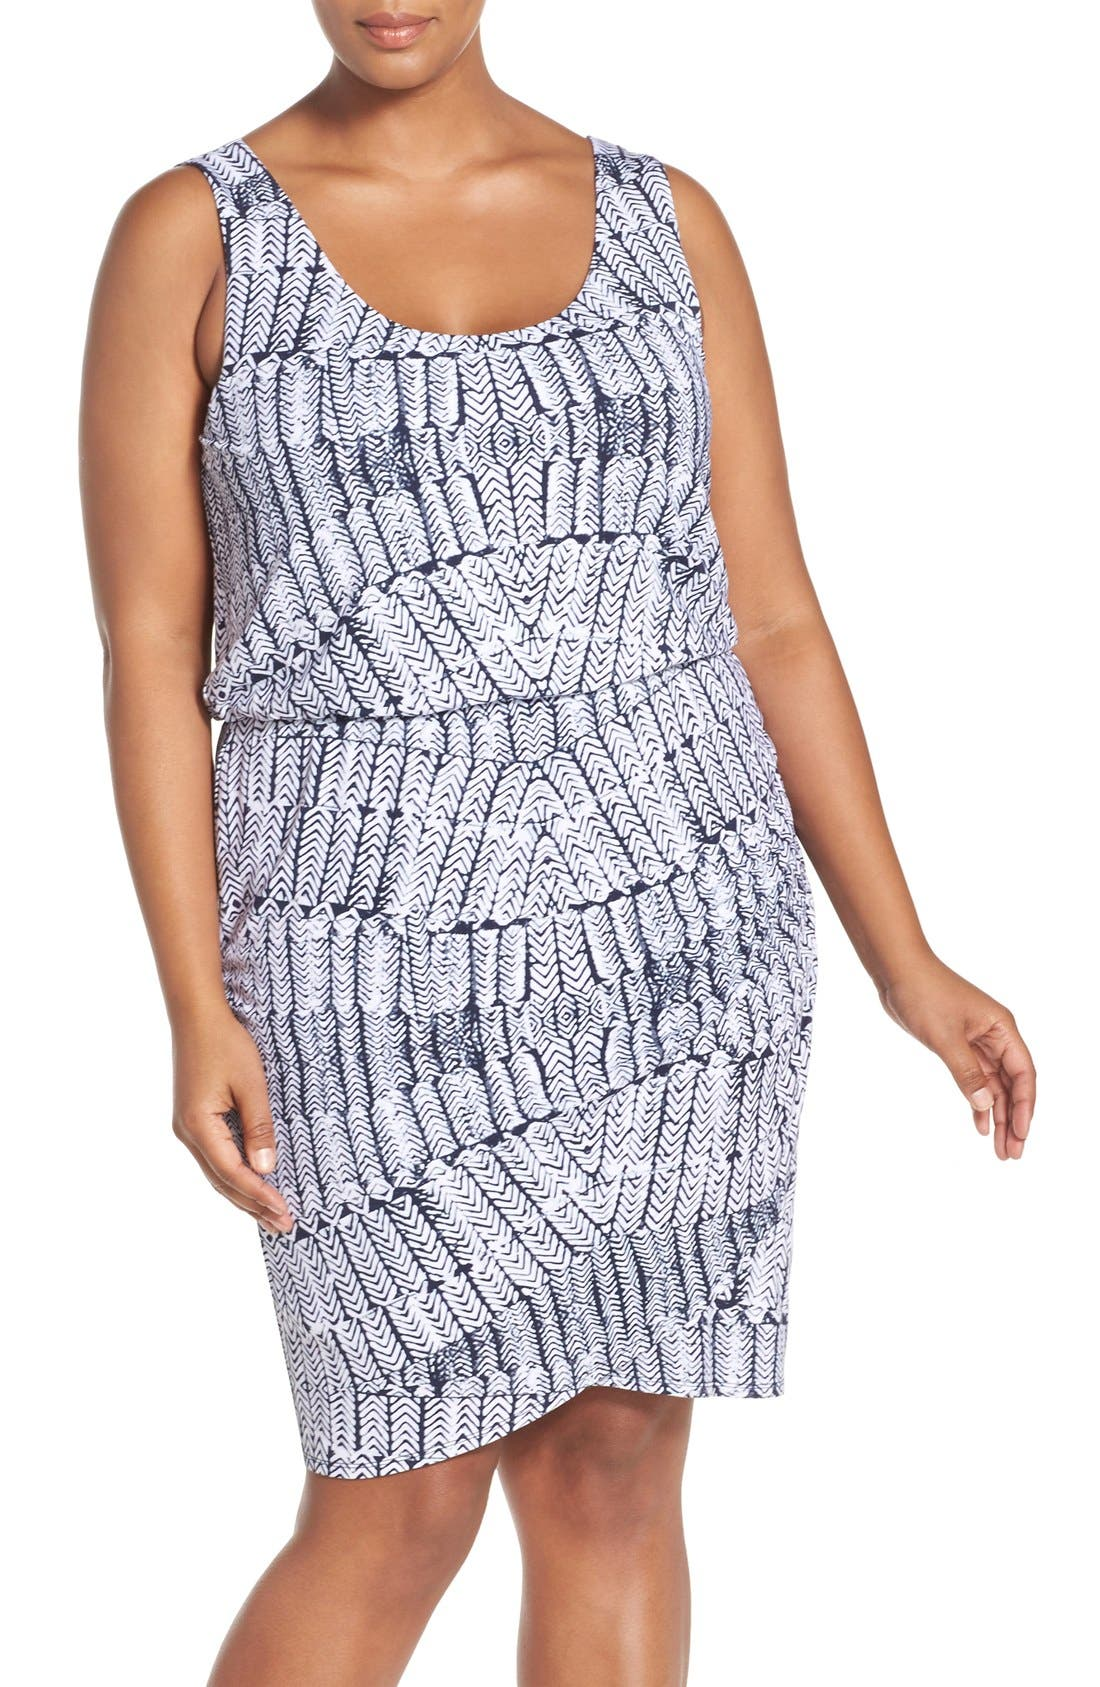 Alternate Image 1 Selected - Tart Jan Print Jersey Sleeveless Blouson Dress (Plus Size)